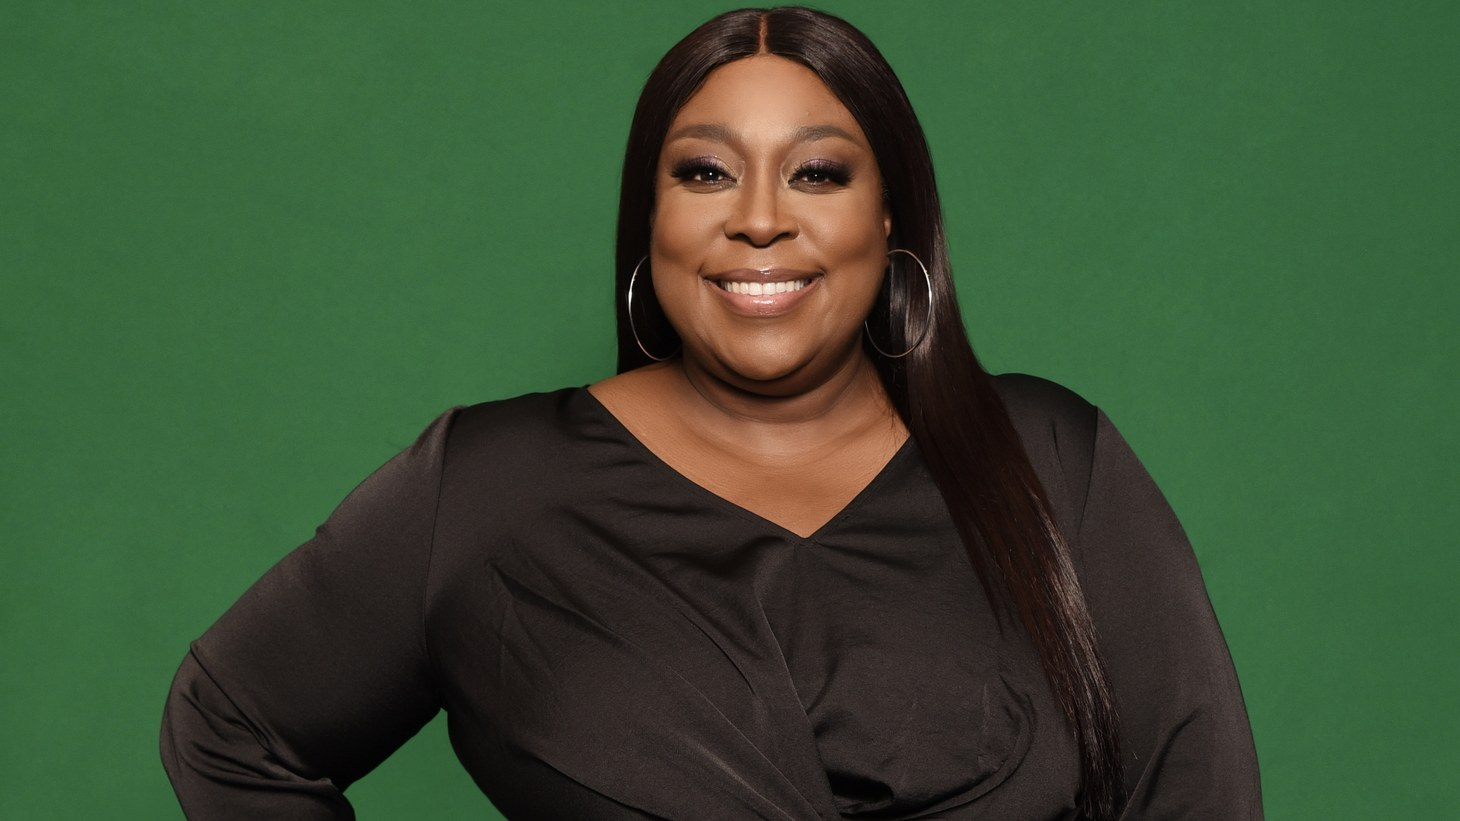 Comedian Loni Love is serious about educating people about COVID-19.